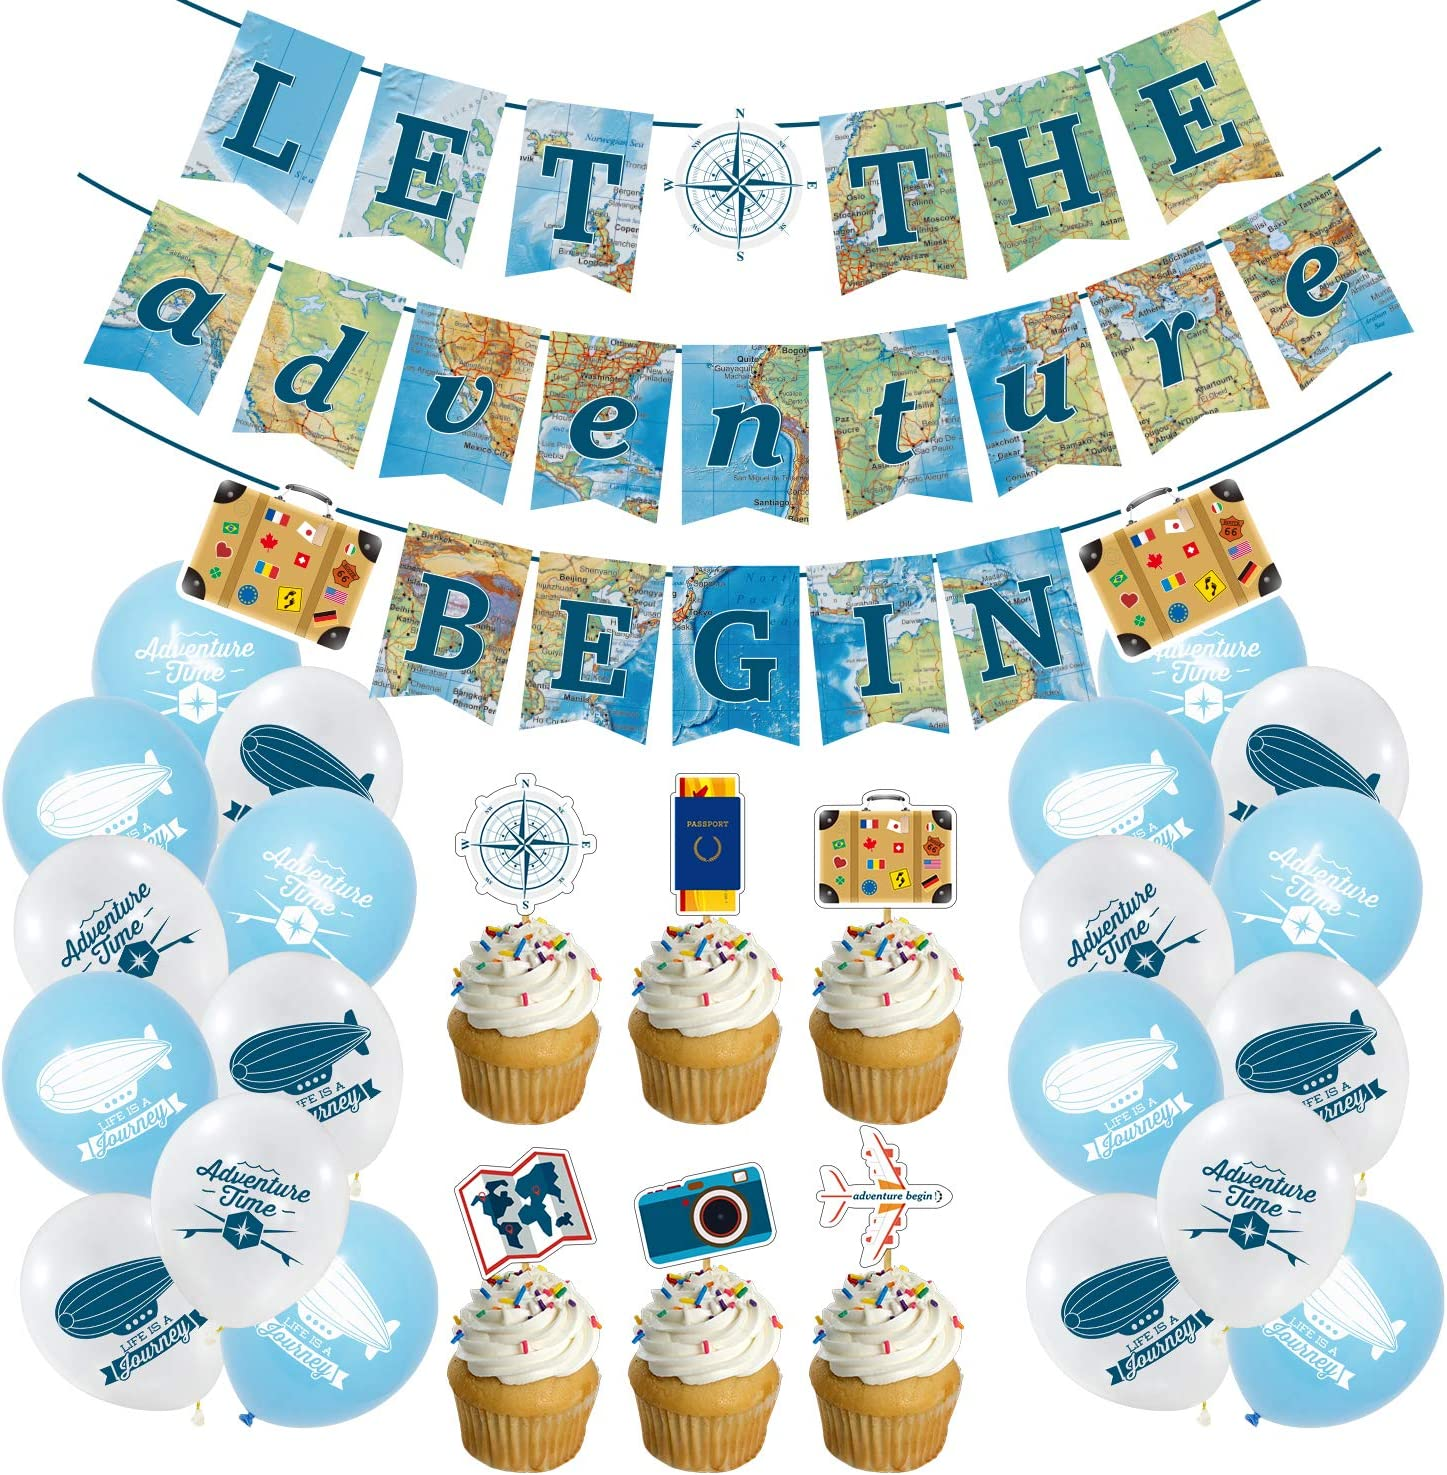 Retirement Party Decorations Travel, Travel Themed Decorations Let the Adventure Begin Party Banner Balloons with Cake Toppers